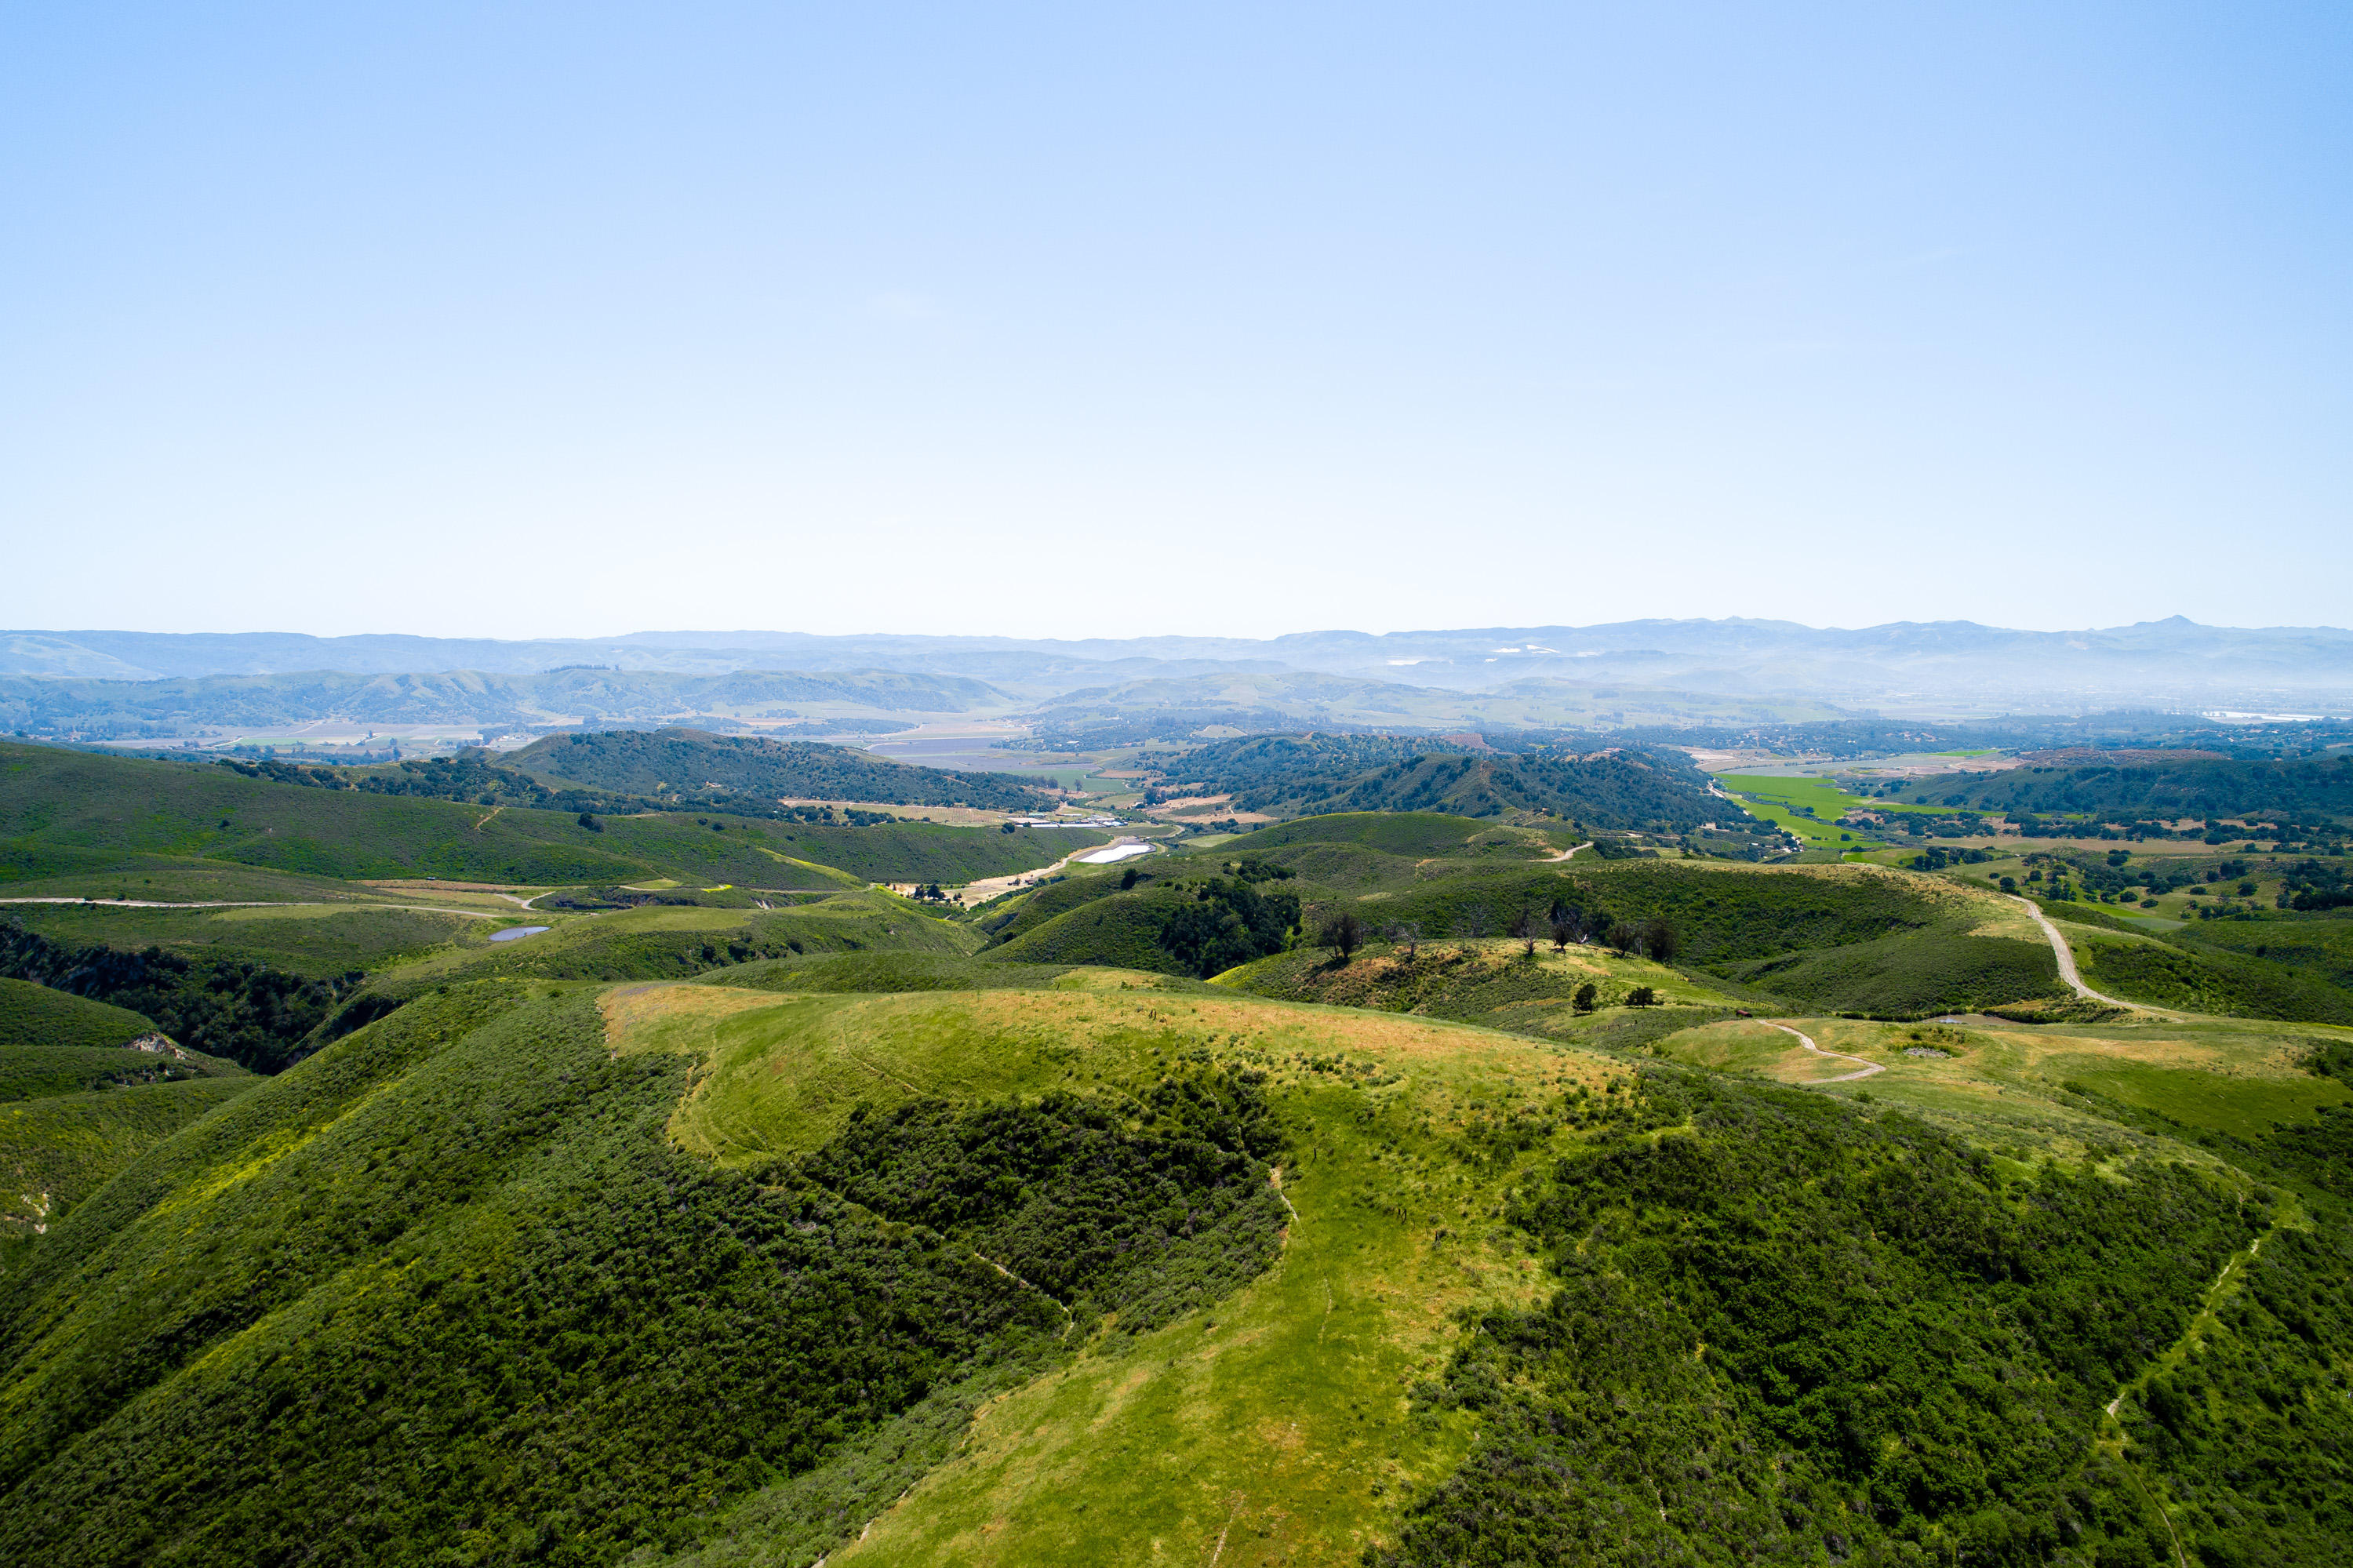 3900 Gypsy Canyon Rd, Lompoc, California